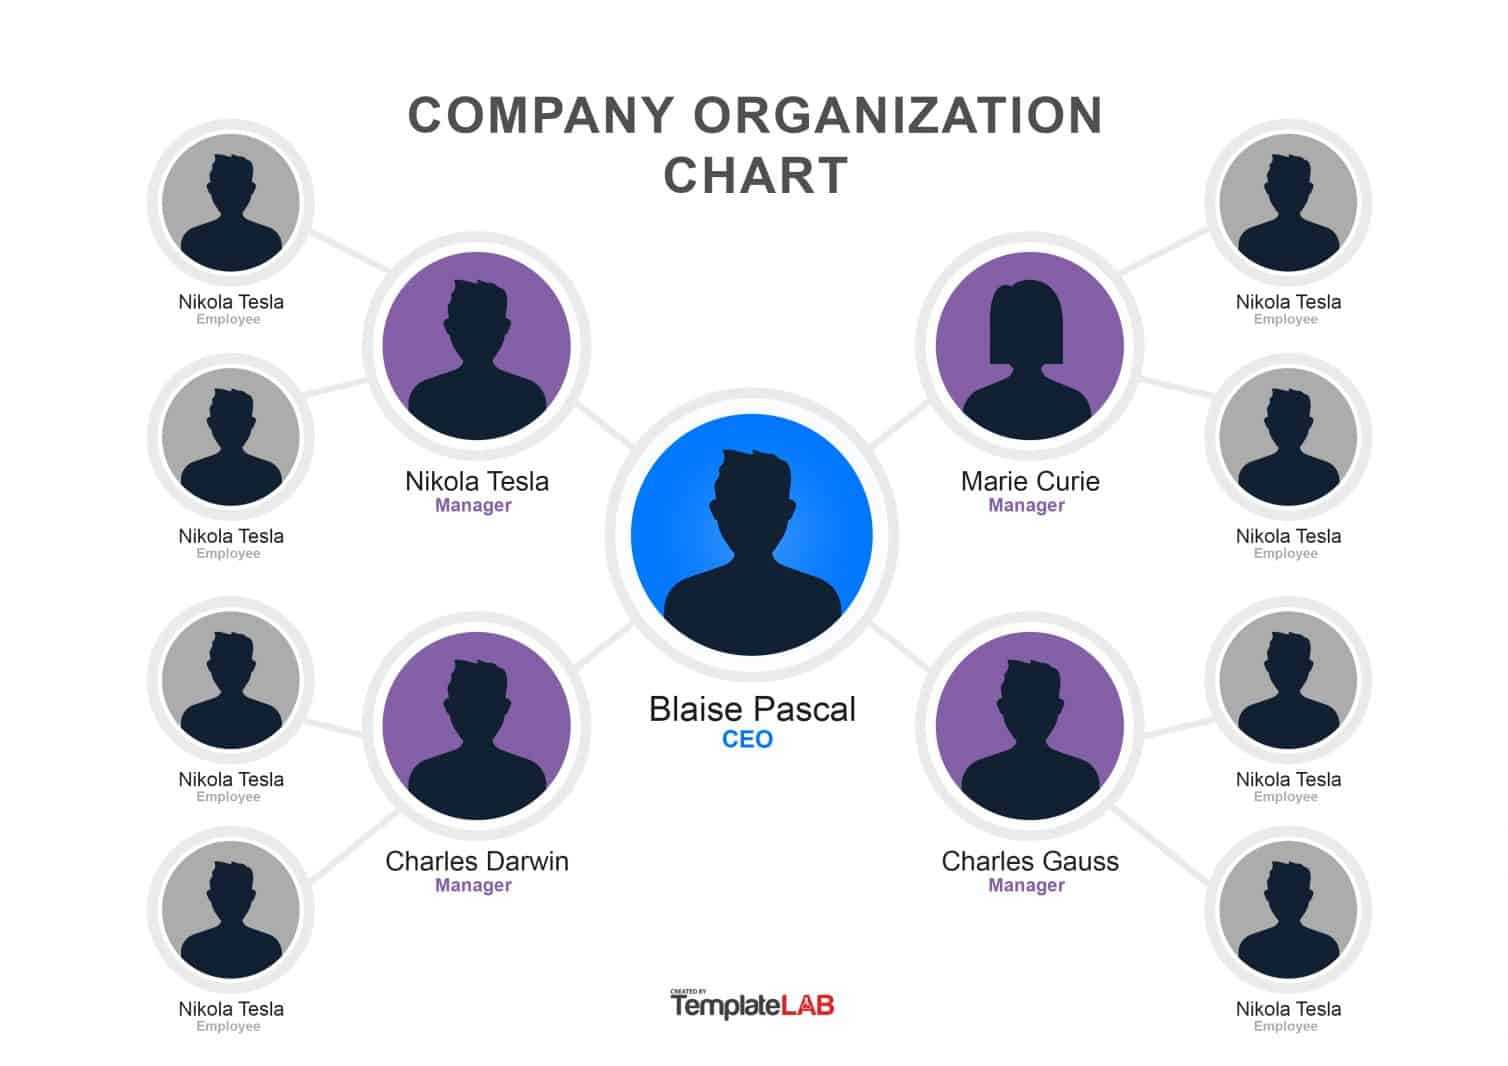 40 Organizational Chart Templates (Word, Excel, Powerpoint) With Microsoft Powerpoint Org Chart Template